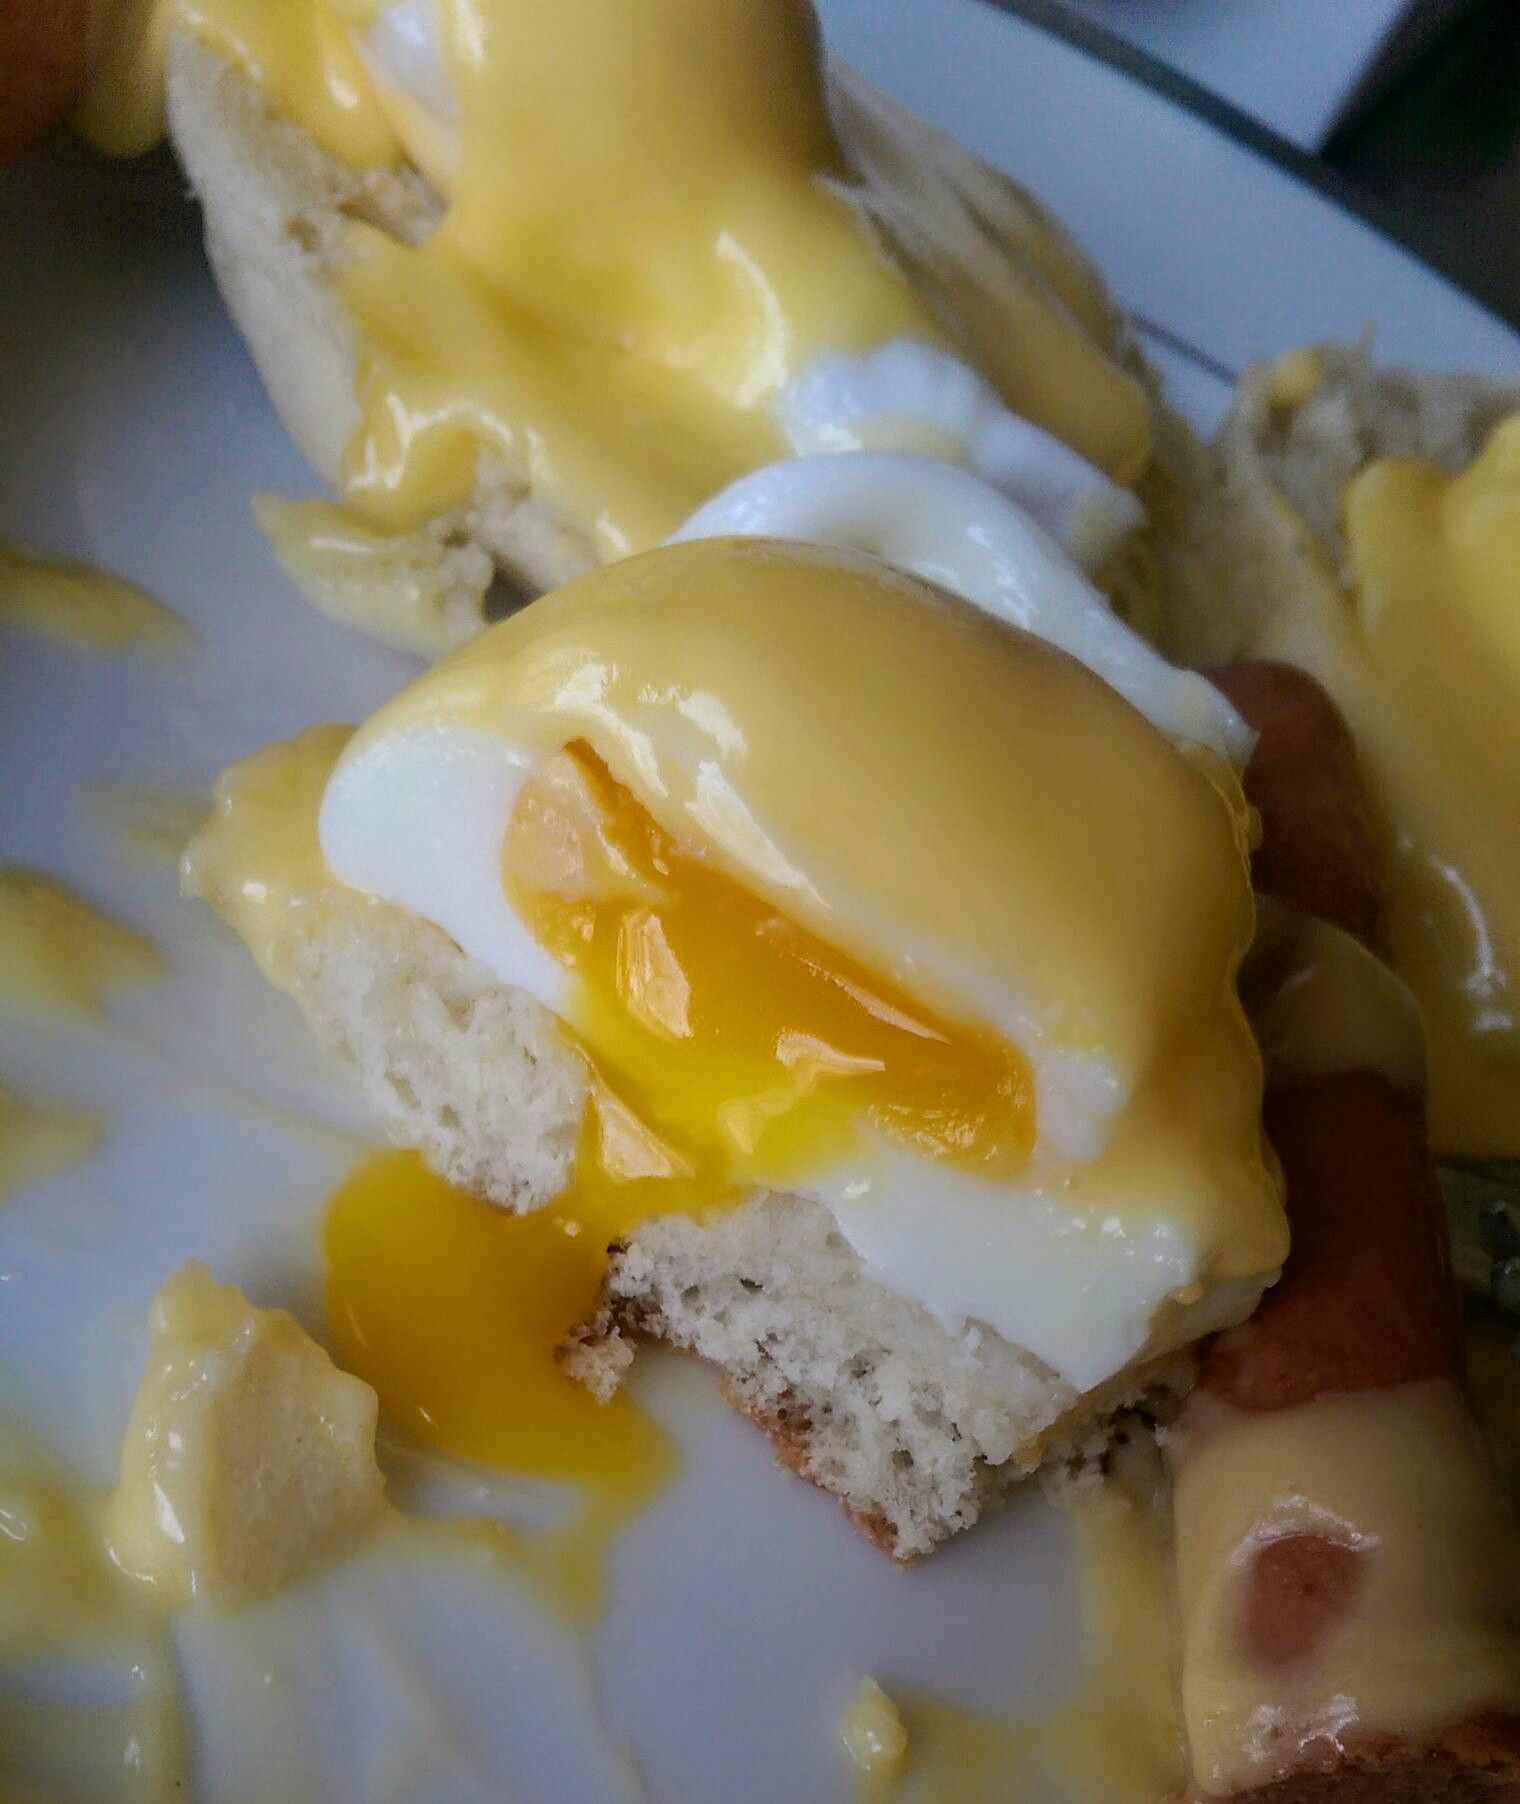 [Homemade] Eggs Benedict #recipes #food #cooking #delicious #foodie #foodrecipes #cook #recipe #health